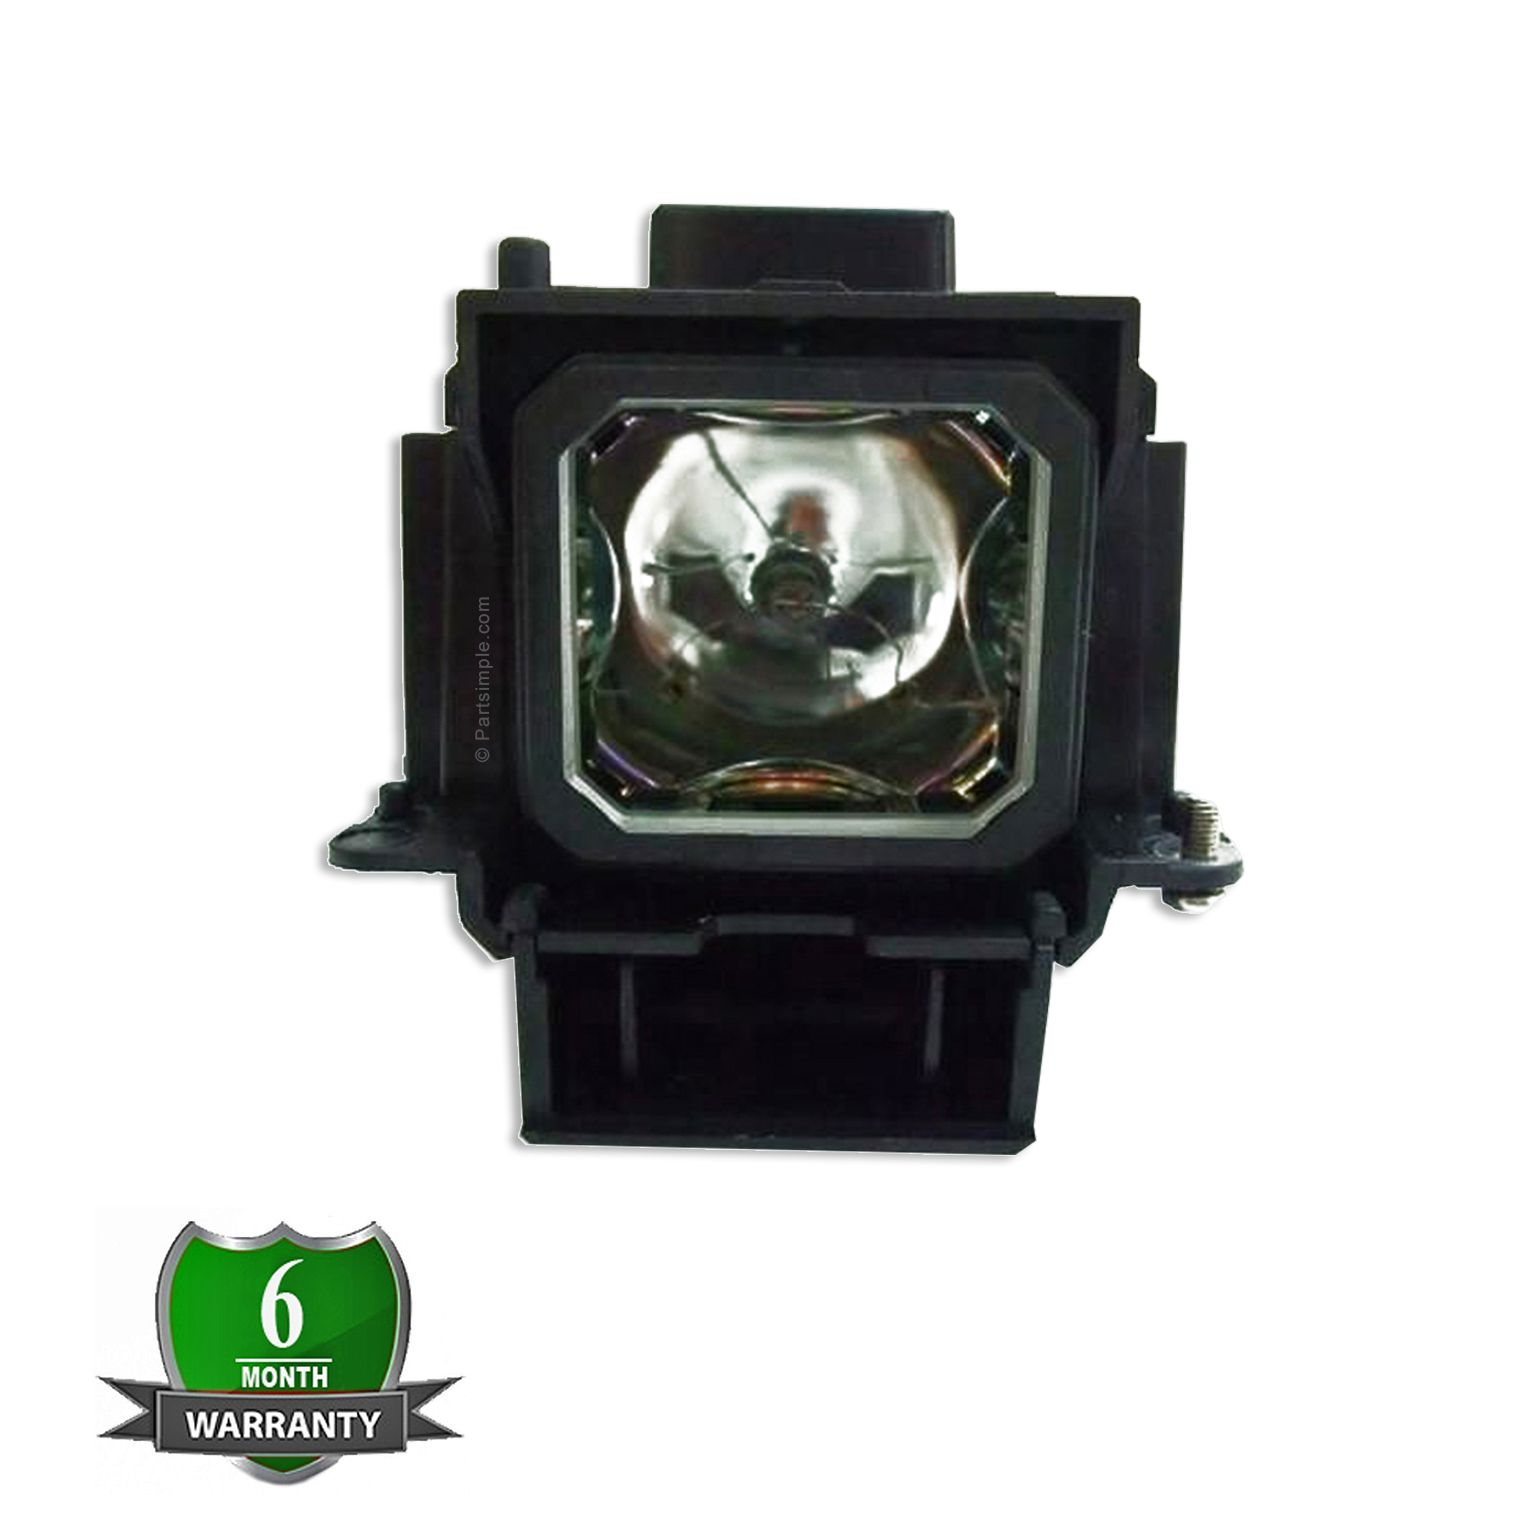 #01-00161 #OEM Replacement #Projector #Lamp with Original Compatible Bulb